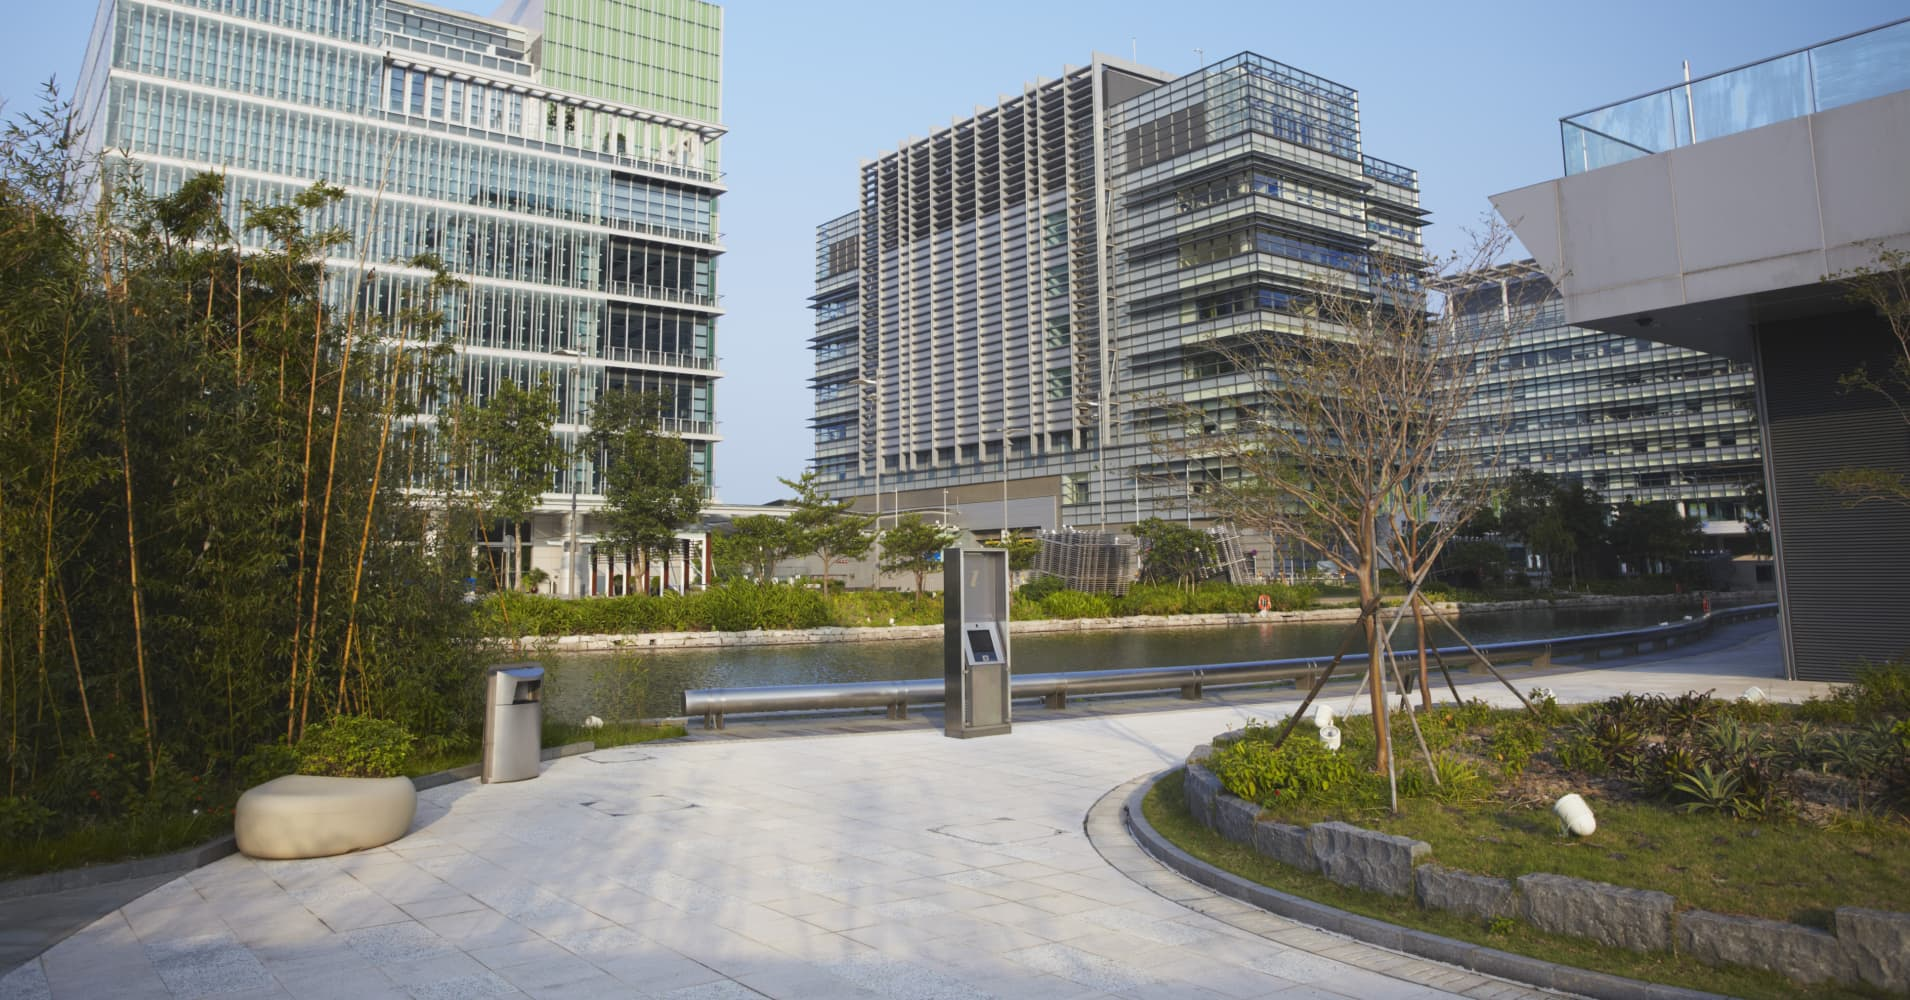 Hkstp S Allen Ma Hong Kong Science Park Attracting Top